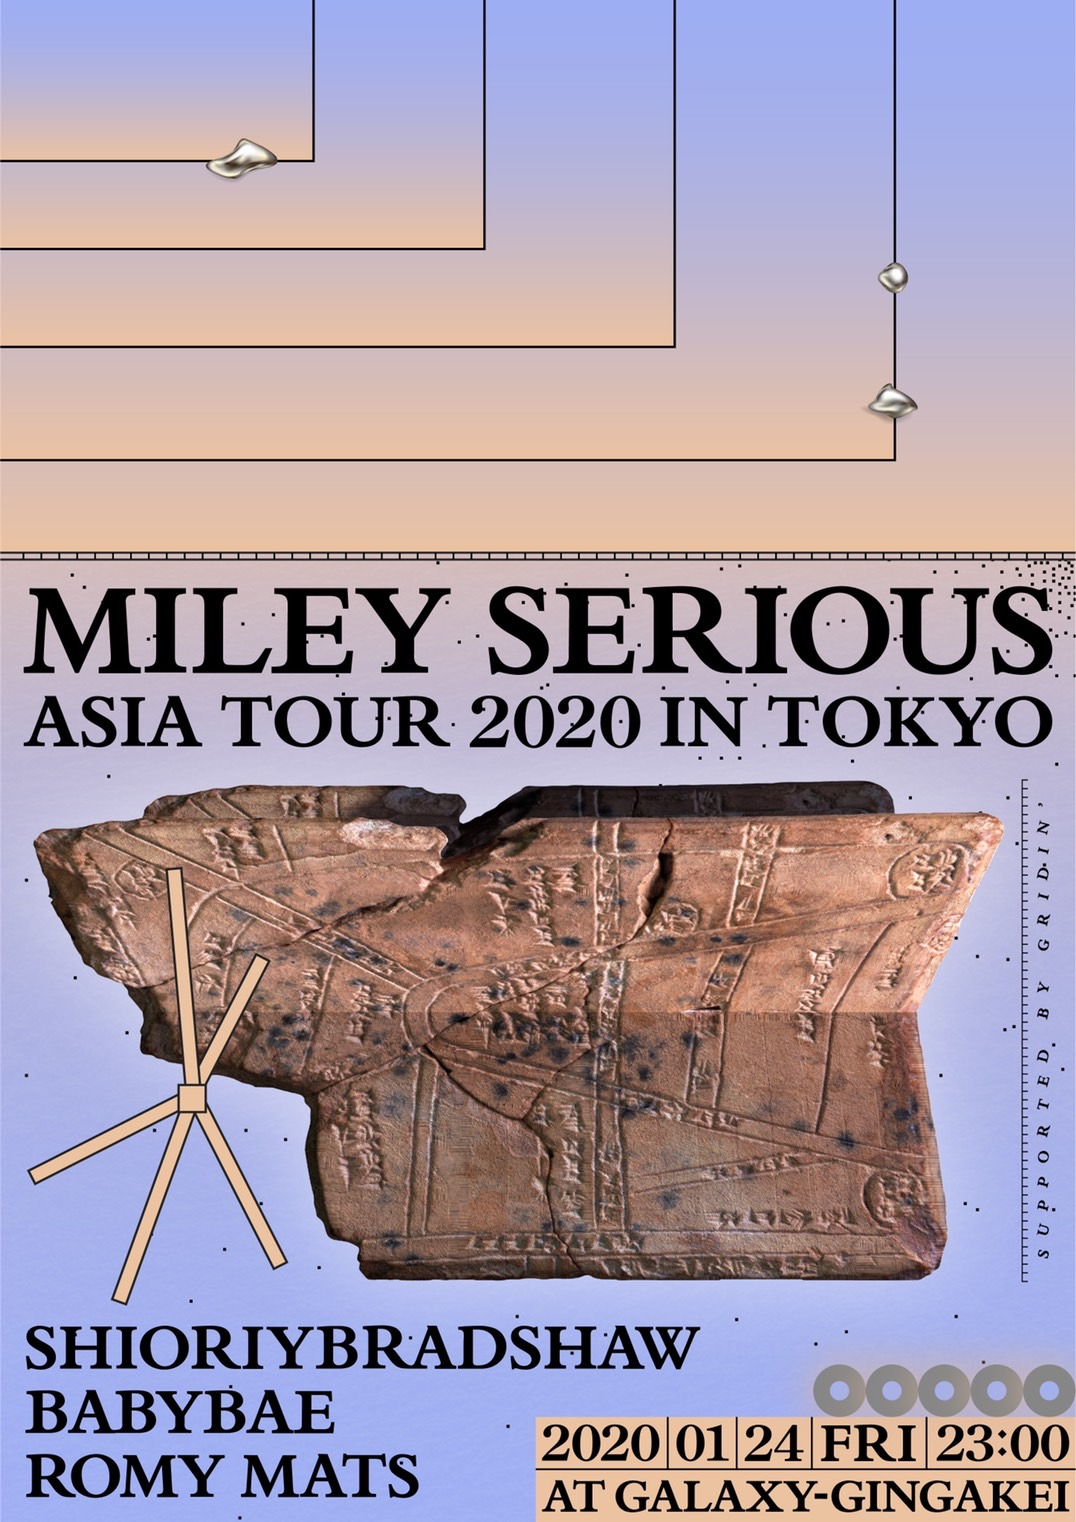 Miley Serious Asia tour 2020 in Tokyo supported by GRIDIN'